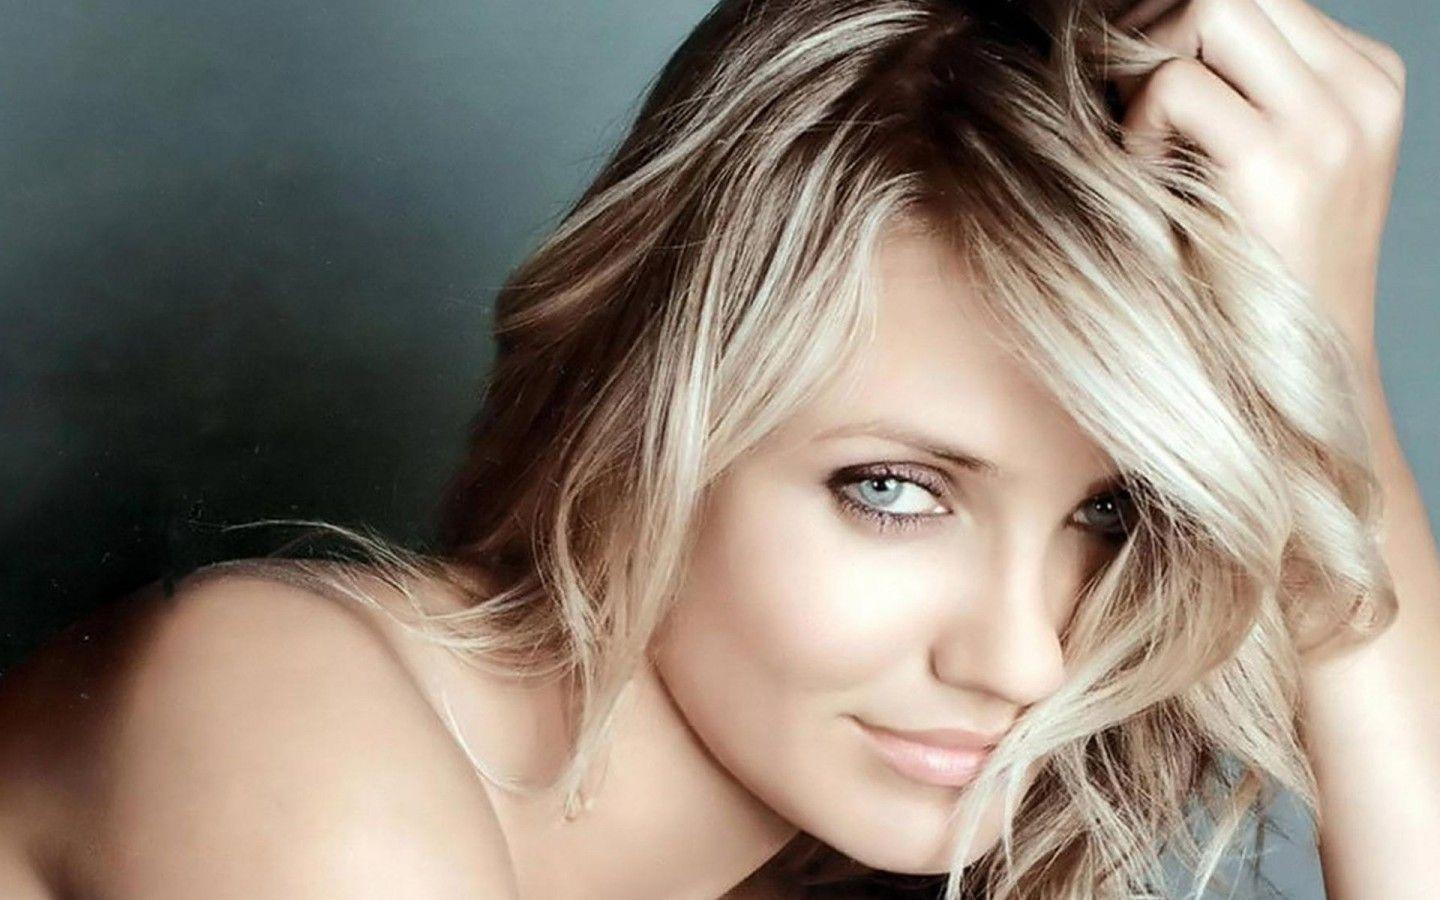 Cameron Diaz Wallpapers 1440x900